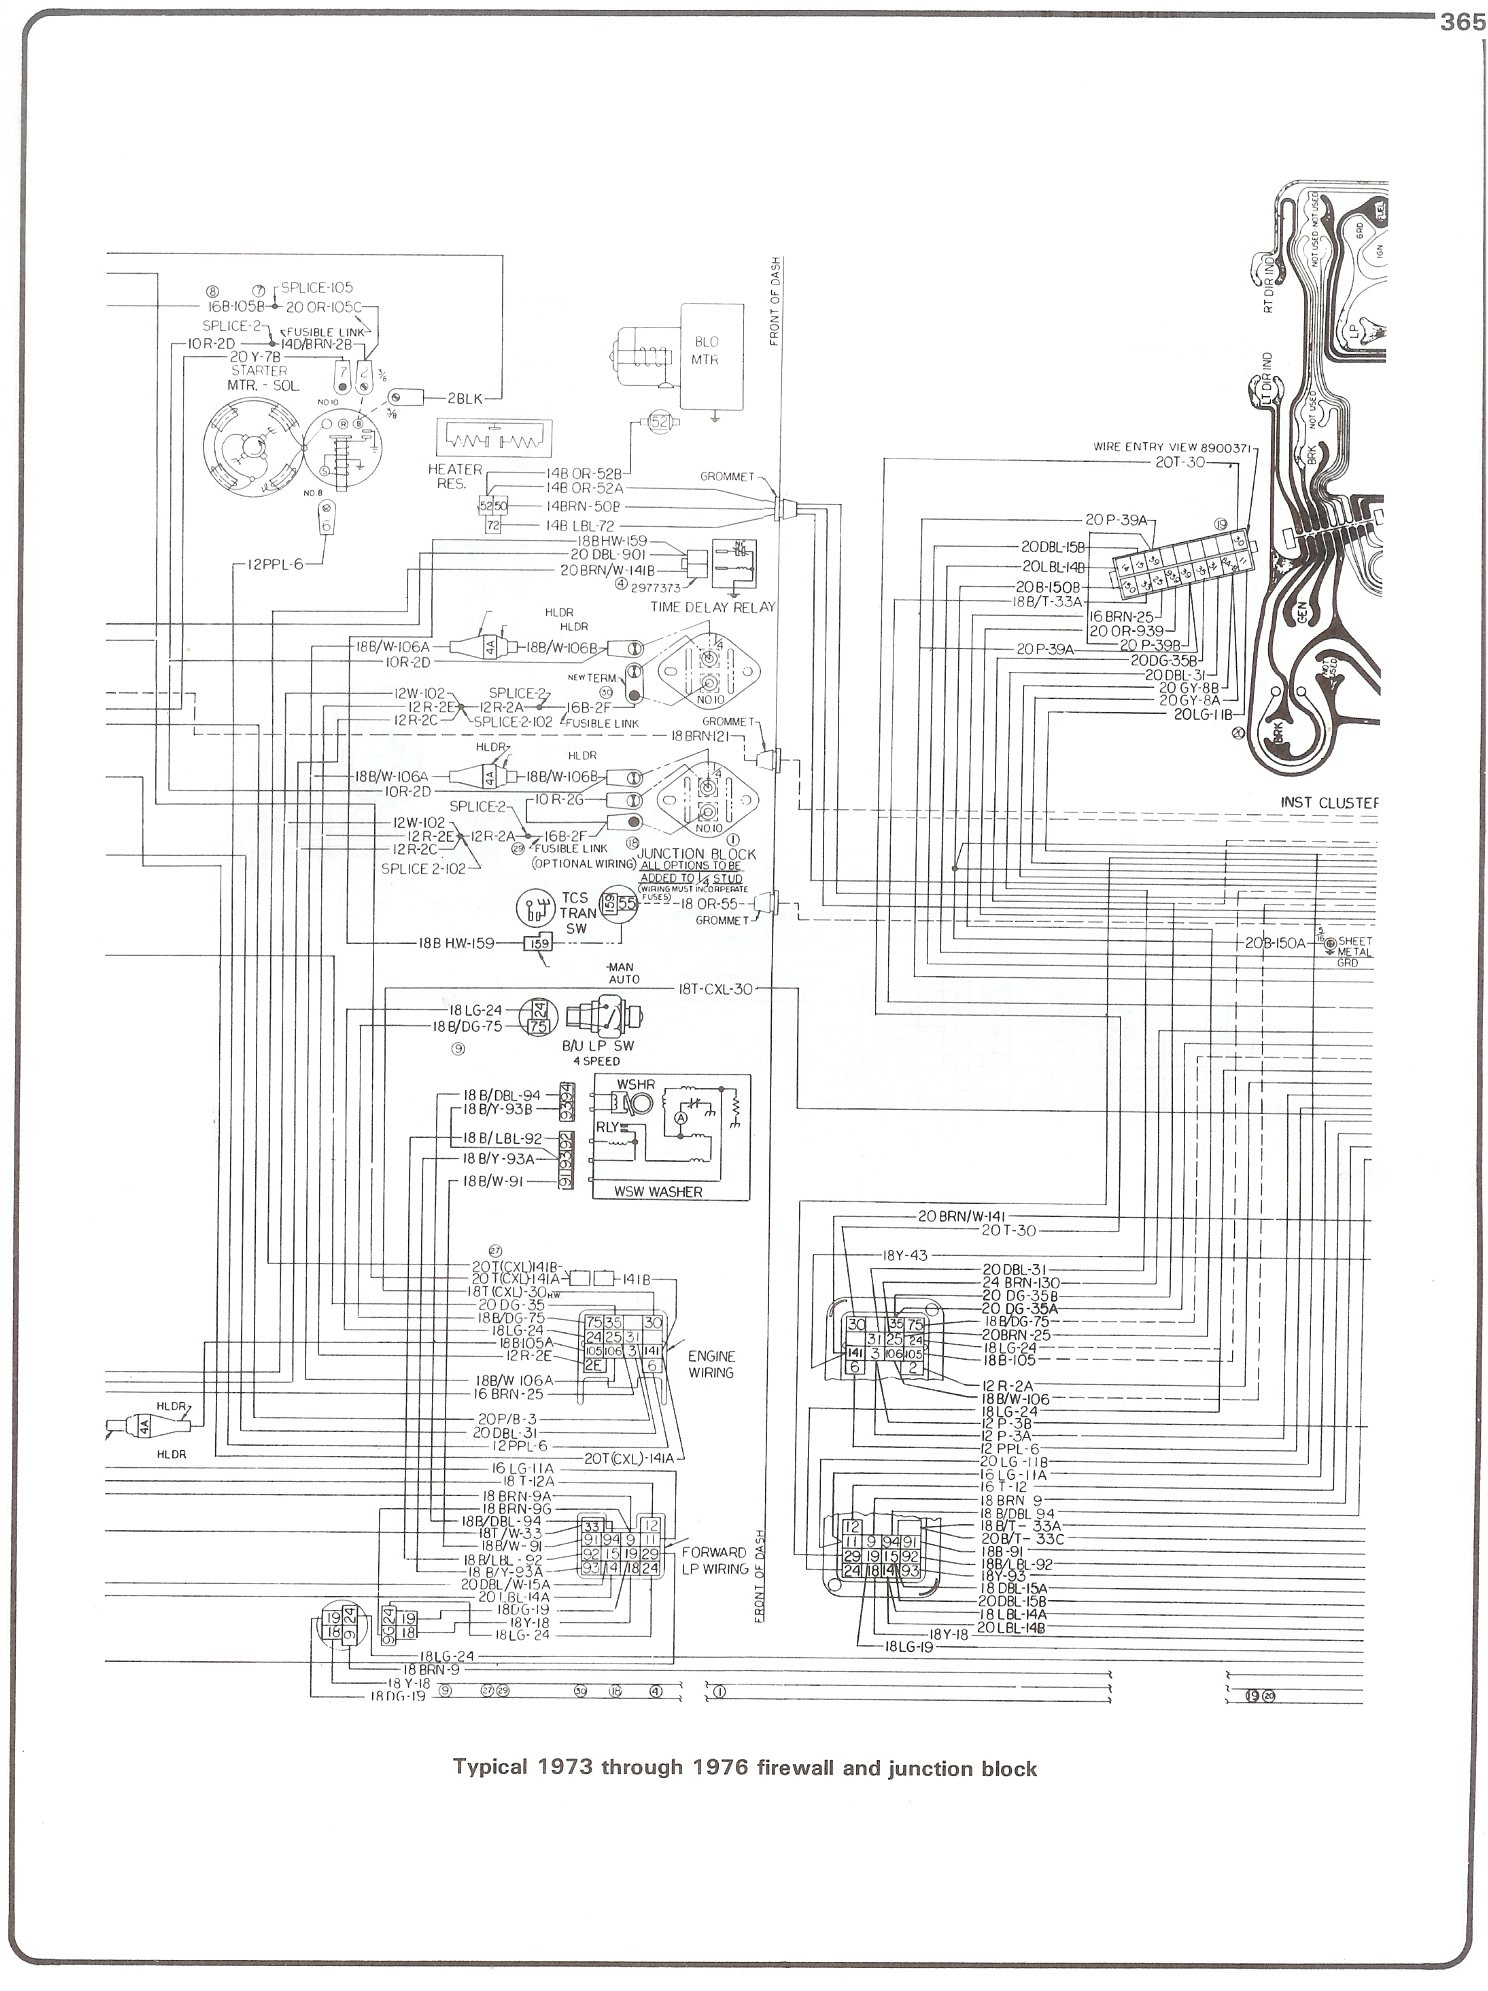 73 76_firewall_junct complete 73 87 wiring diagrams 1979 Pontiac Wiring Diagram at edmiracle.co